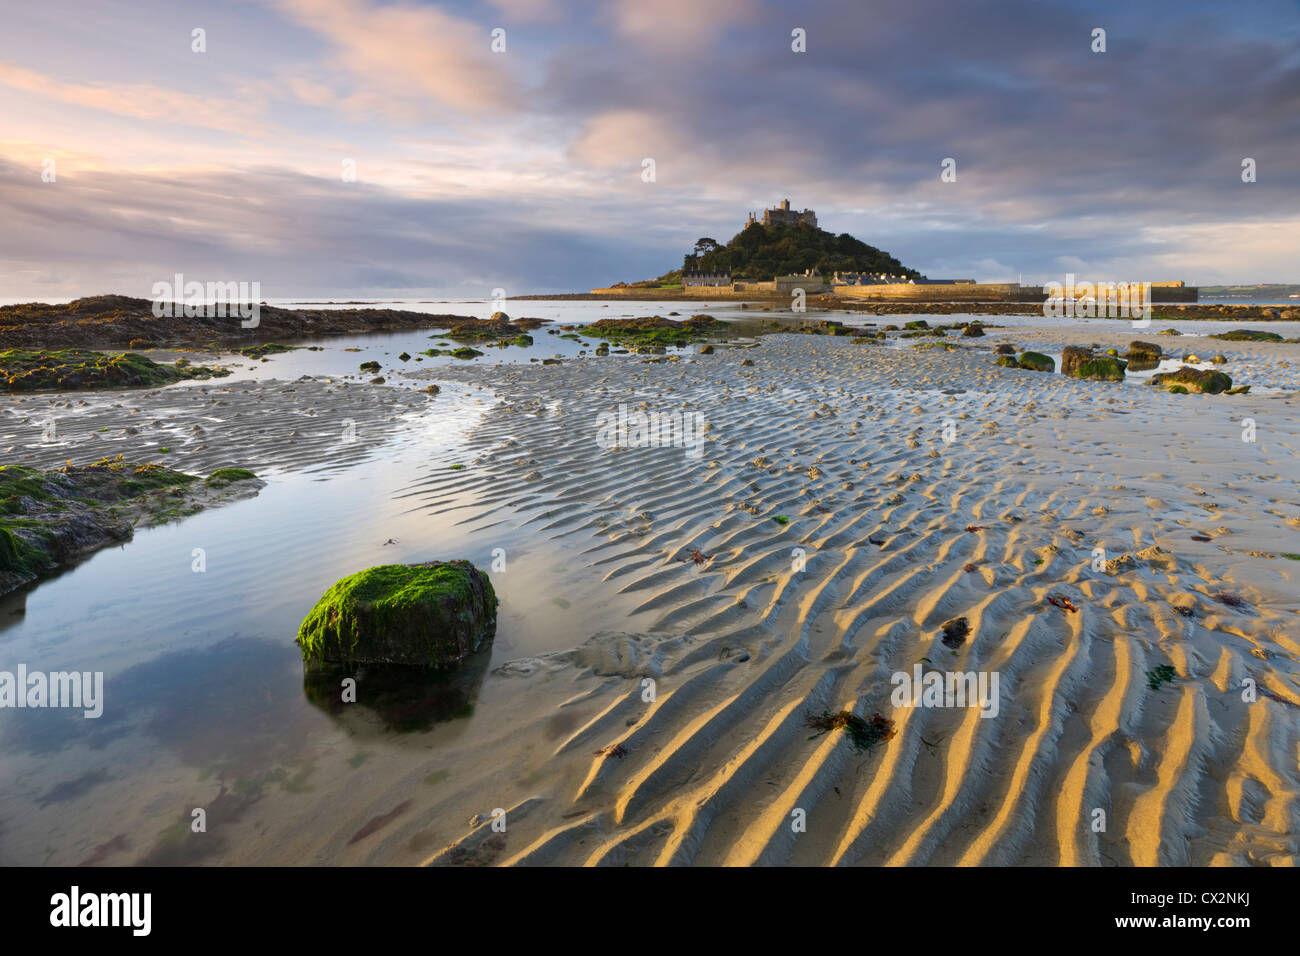 Low tide over Mounts Bay looking towards St Michaels Mount, Cornwall, England. Autumn (October) 2010. - Stock Image